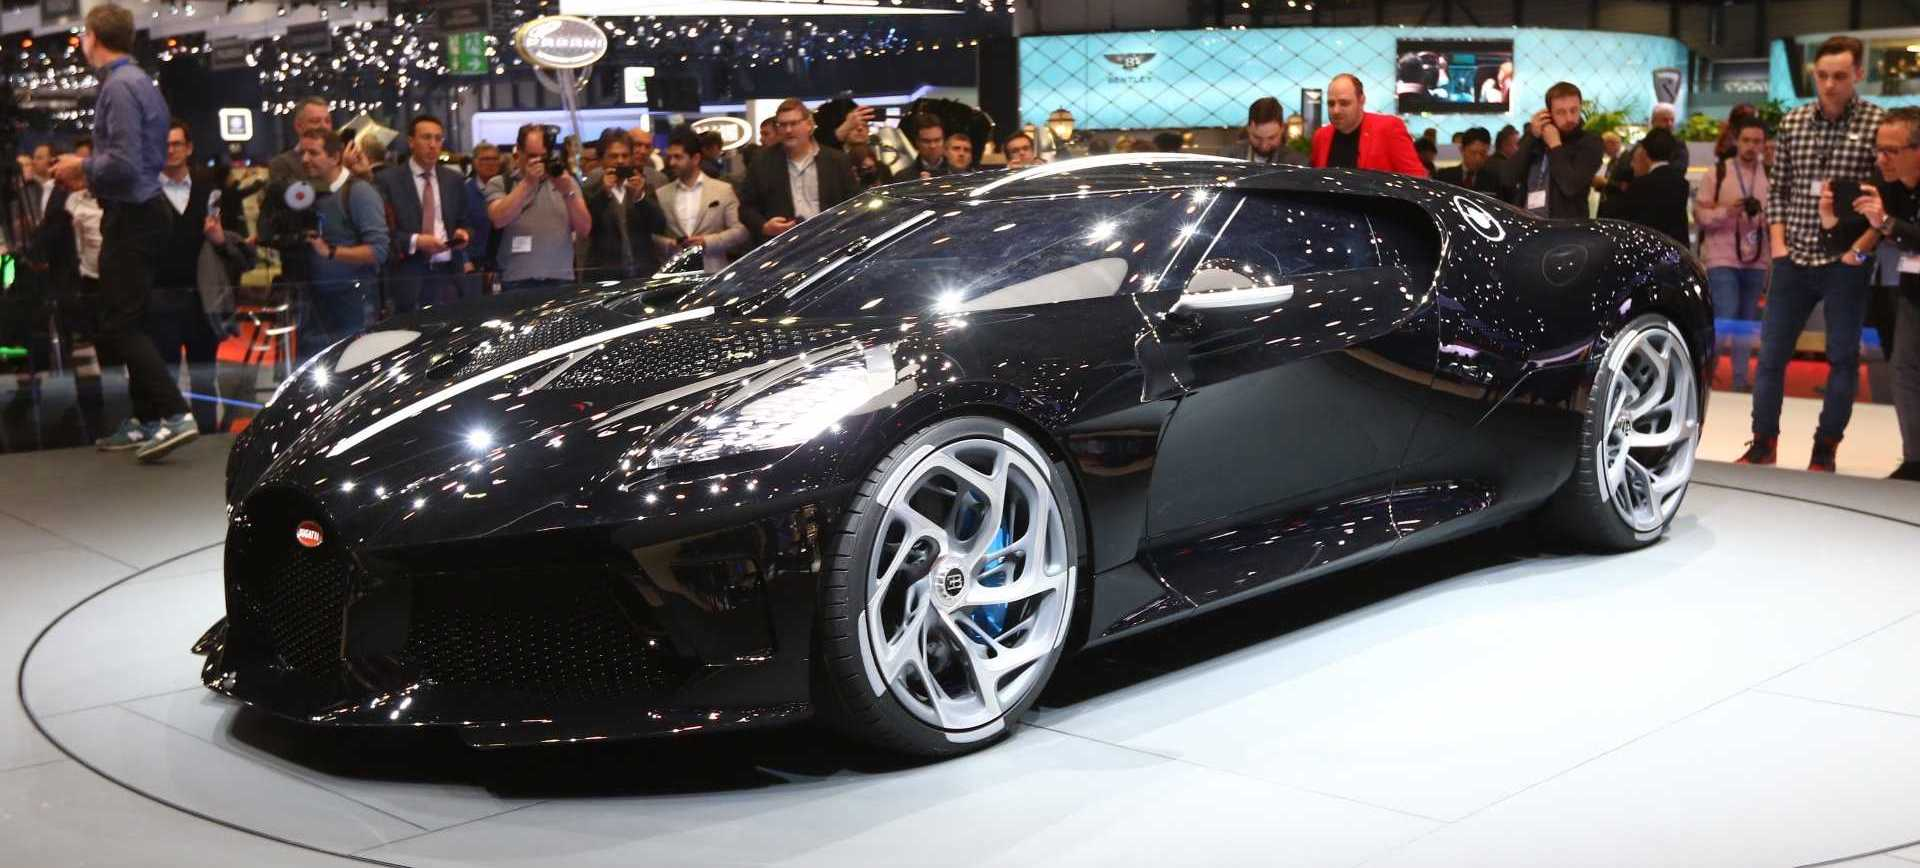 Bugatti La Voiture Noire Allegedly Bought By Cristiano Ronaldo